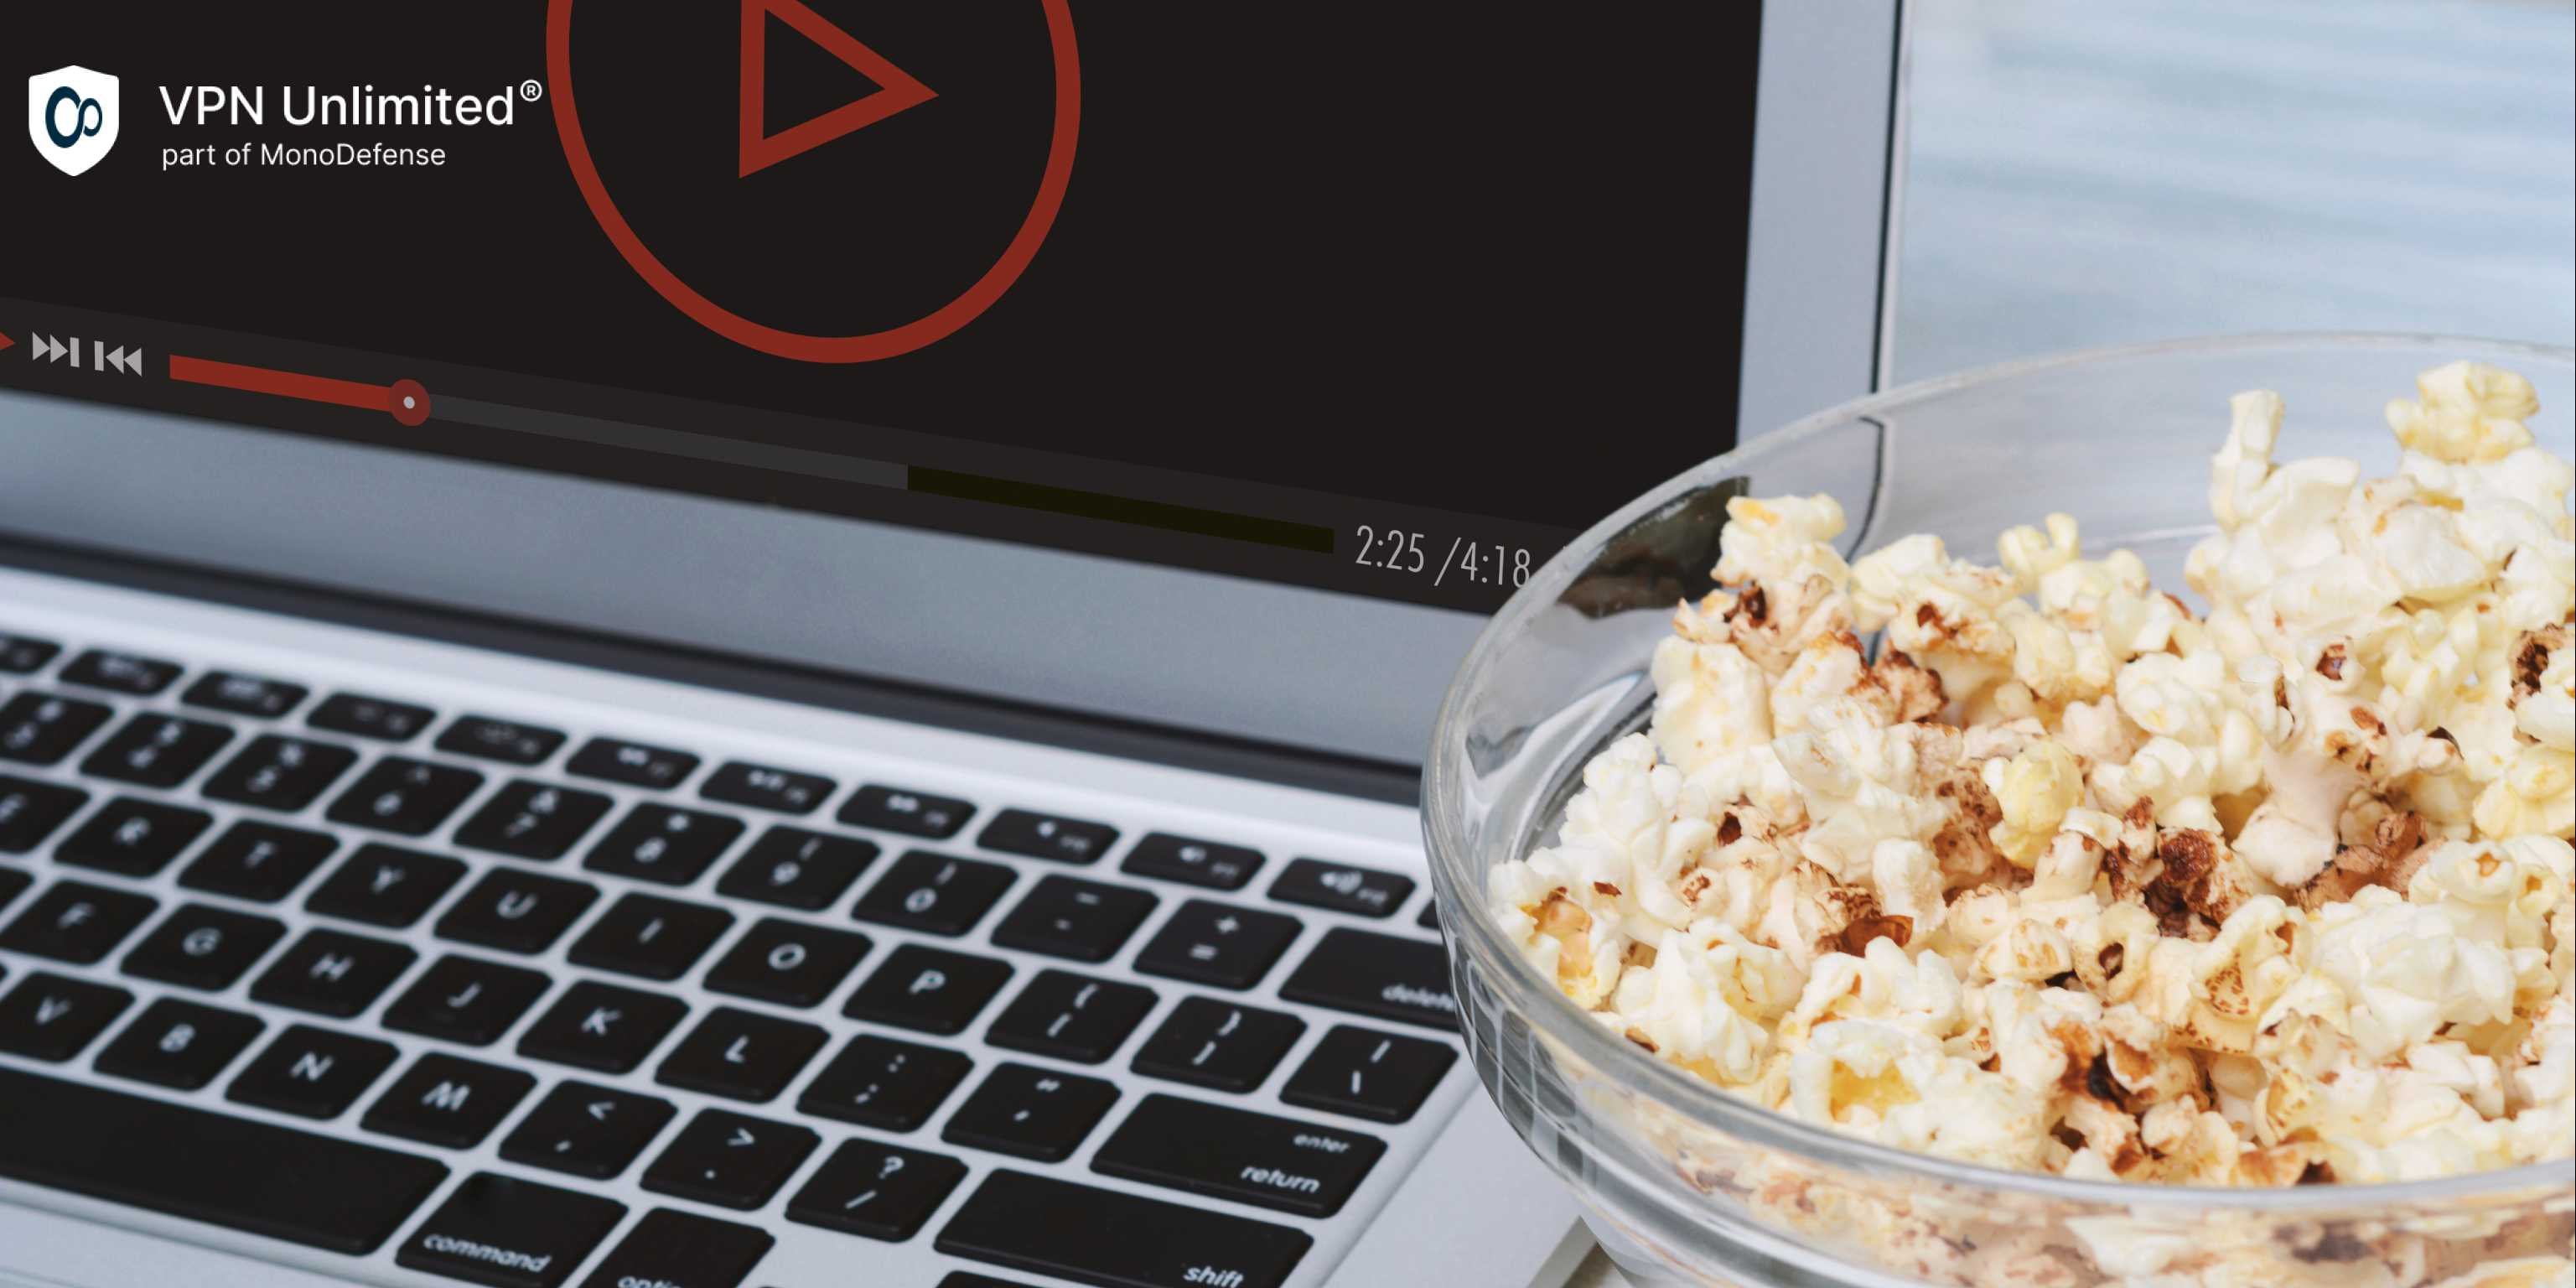 How to unlock streaming services